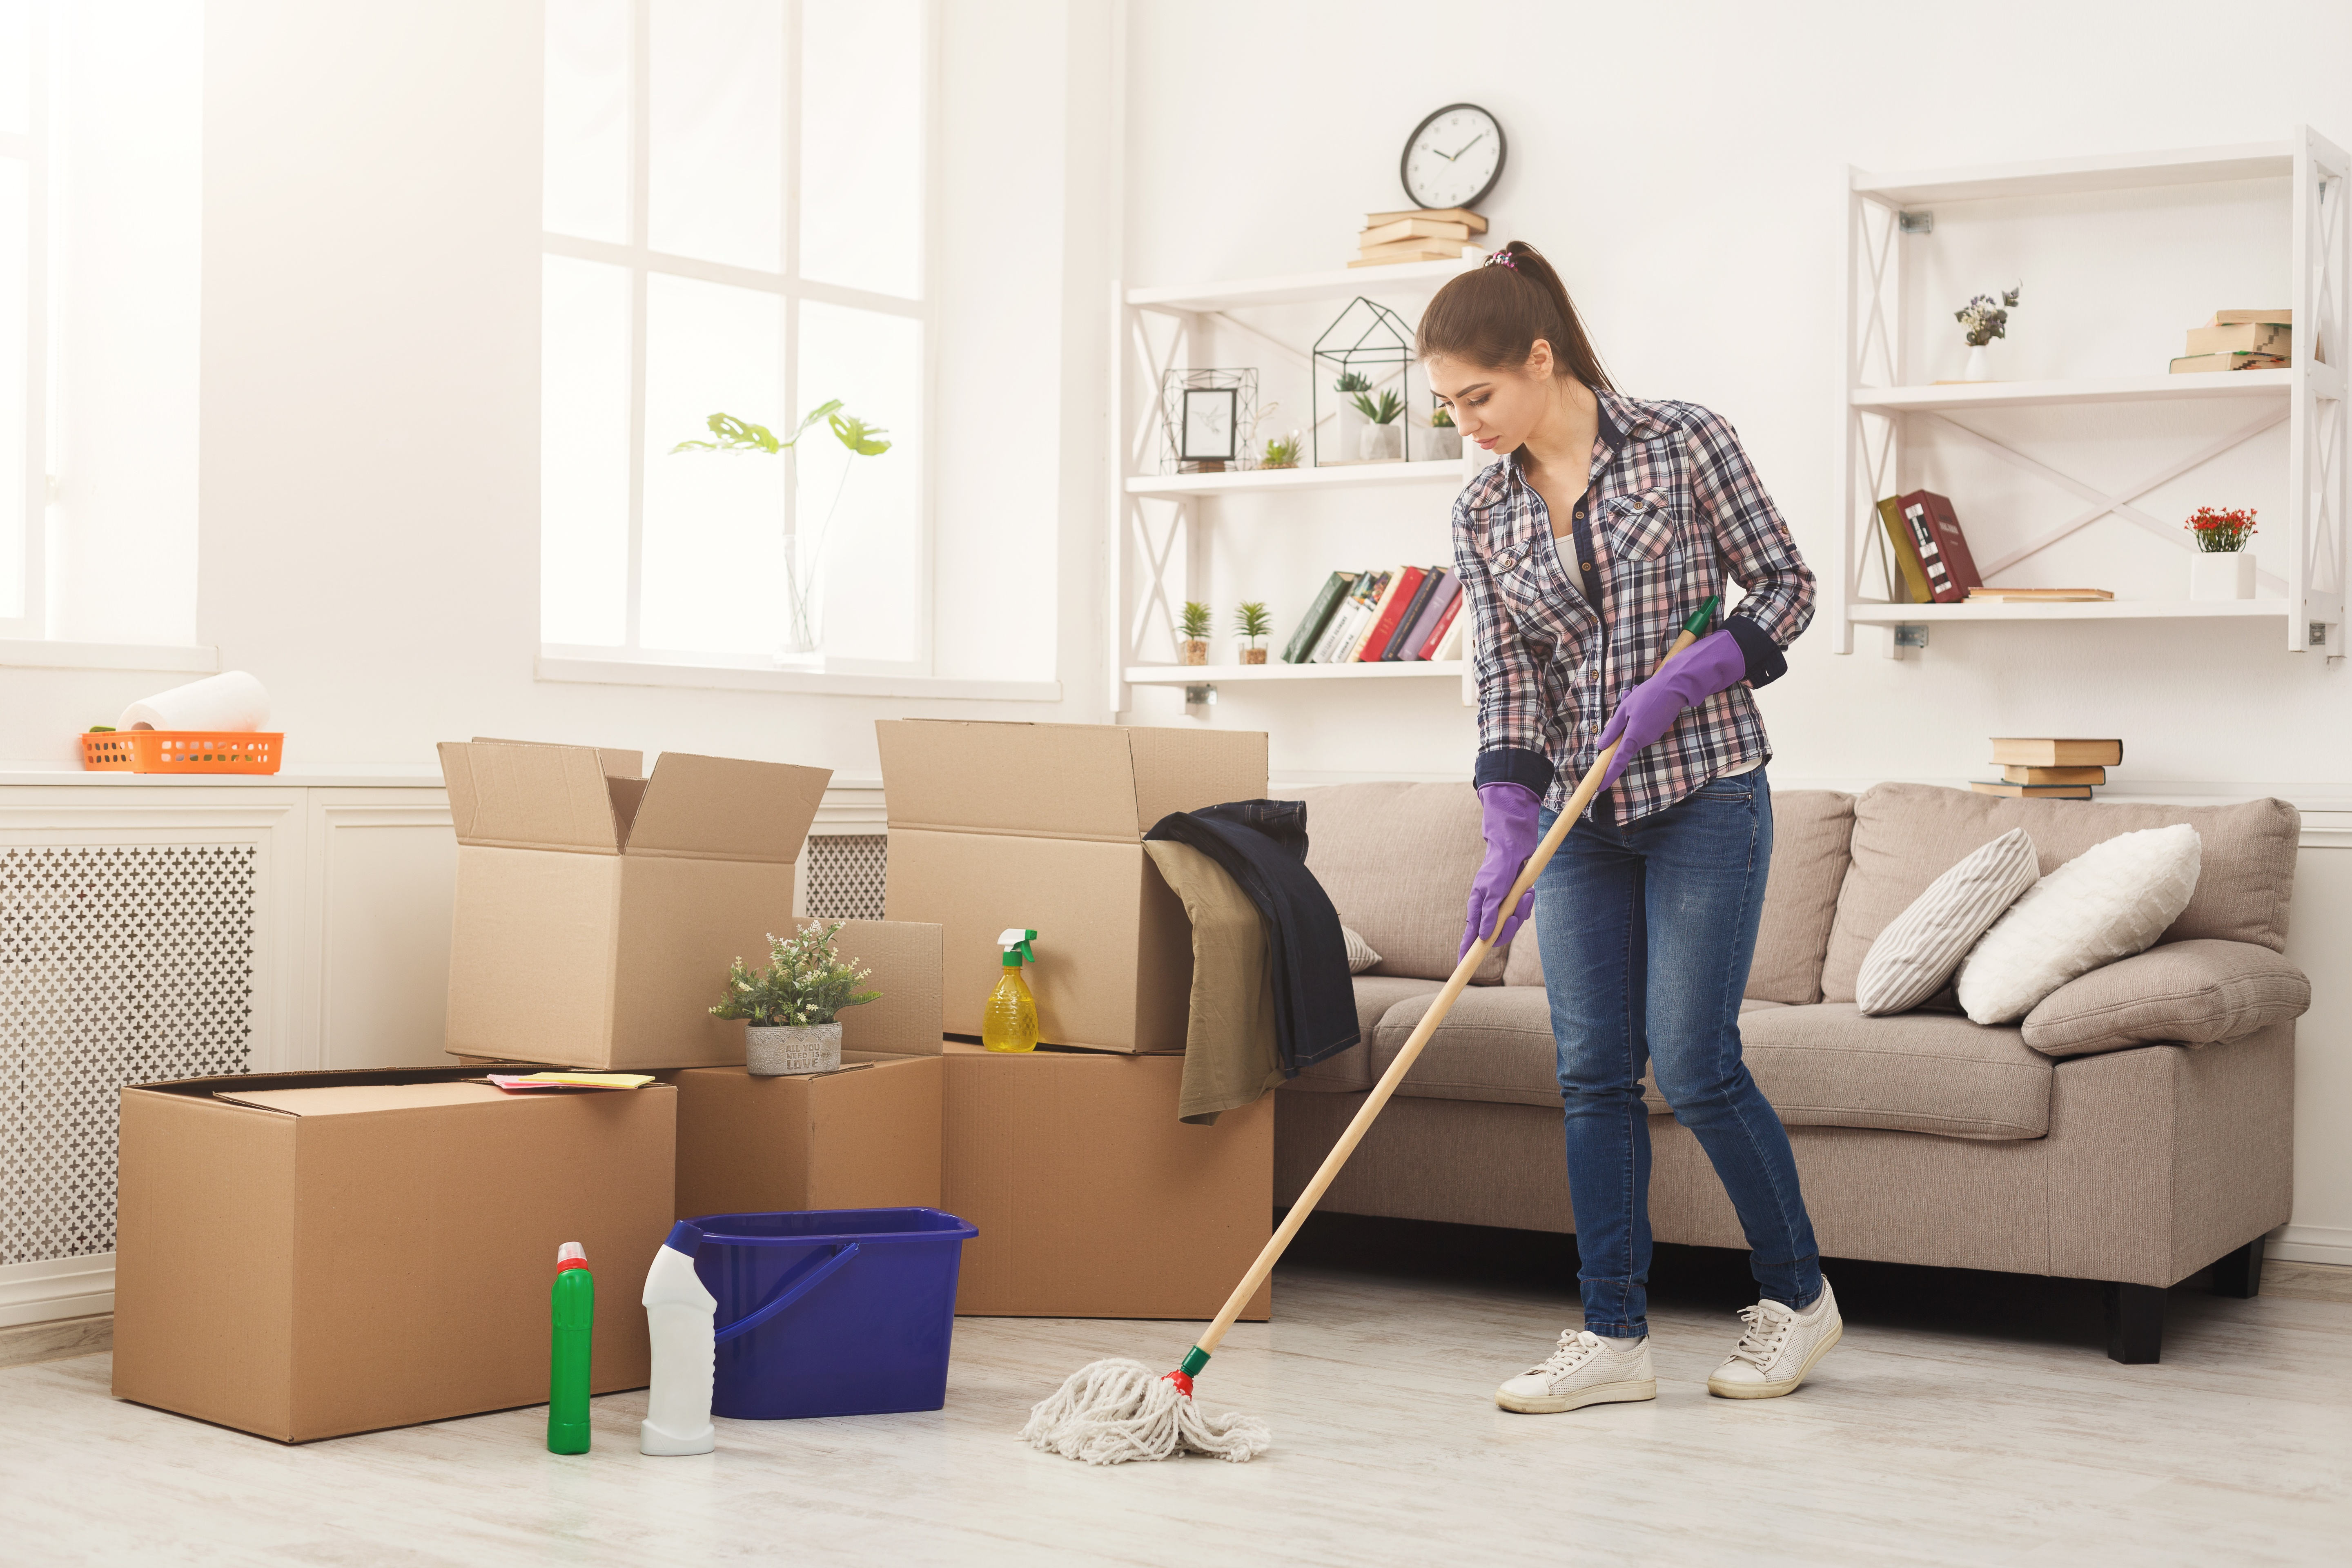 5 Simple but Essential Home Maintenance Tips